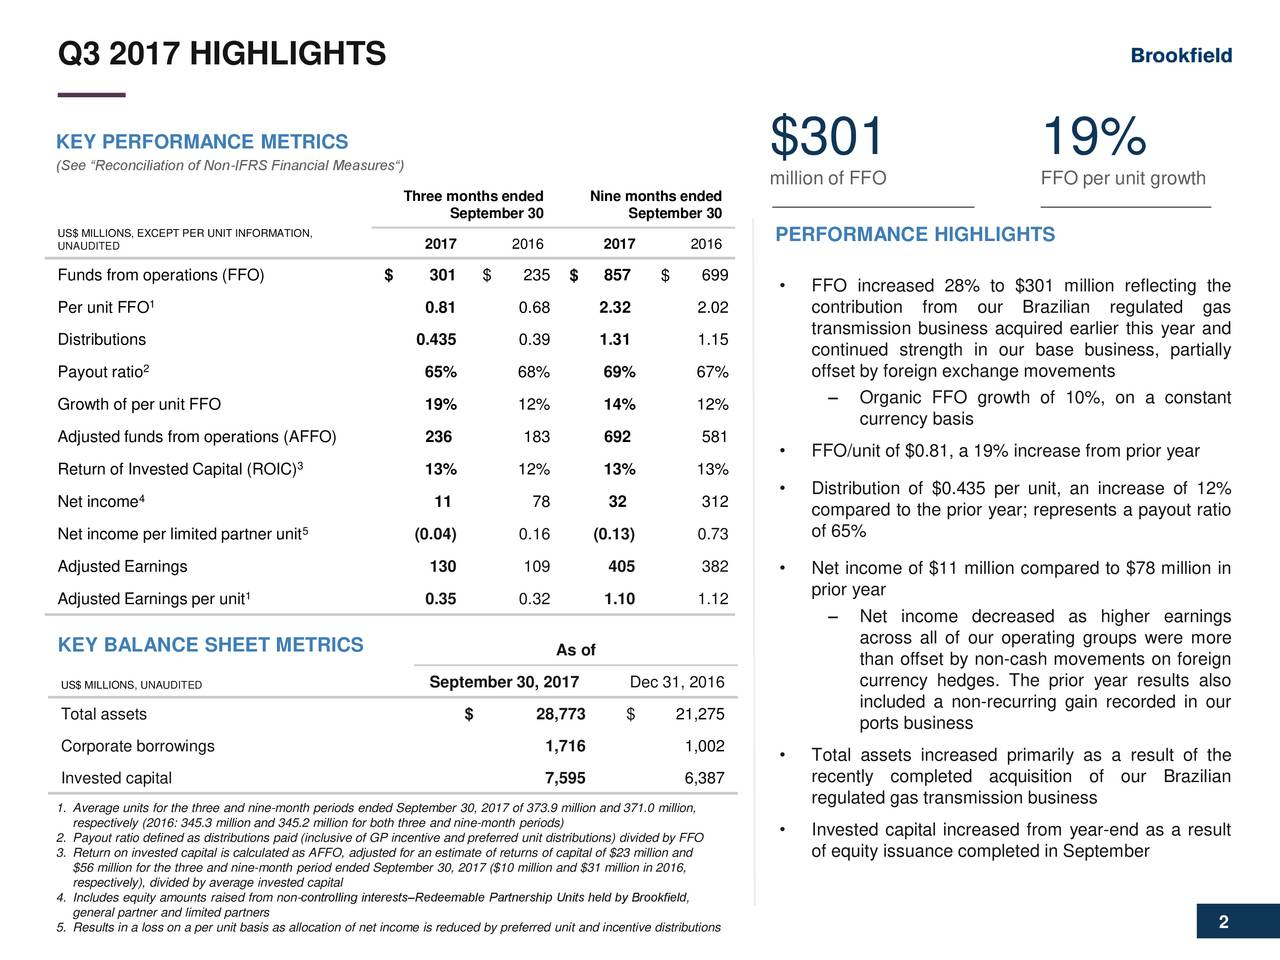 "KEY PERFORMANCE METRICS $301 19% (See ""Reconciliation of Non-IFRS Financial Measures"") million of FFO FFO per unit growth Three months ended Nine months ended September 30 September 30 US$ MILLIONS, EXCEPT PER UNIT INFORMATION, PERFORMANCE HIGHLIGHTS UNAUDITED 2017 2016 2017 2016 Funds from operations (FFO) $ 301 $ 235 $ 857. $ 699 • FFO increased 28% to $301 million reflecting the 1 Per unit FFO 0.81 0.68 2.32. 2.02 contribution from our Brazilian regulated gas transmission business acquired earlier this year and Distributions 0.435 0.39 1.31. 1.15 continued strength in our base business, partially 2 Payout ratio 65% 68% 69% 67% offset by foreign exchange movements ‒ Organic FFO growth of 10%, on a constant Growth of per unit FFO 19% 12% 14% 12% currency basis Adjusted funds from operations (AFFO) 236. 183 692. 581 3 • FFO/unit of $0.81, a 19% increase from prior year Return of Invested Capital (ROIC) 13% 12% 13% 13% 4 • Distribution of $0.435 per unit, an increase of 12% Net income 11. 78 32 . 312 compared to the prior year; represents a payout ratio 5 Net income per limited partner unit (0.04) 0.16 (0.13) 0.73 of 65% Adjusted Earnings 130 109 405 382 • Net income of $11 million compared to $78 million in 1 prior year Adjusted Earnings per unit 0.35 0.32 1.10 1.12 ‒ Net income decreased as higher earnings across all of our operating groups were more KEY BALANCE SHEET METRICS As of than offset by non-cash movements on foreign US$ MILLIONS, UNAUDITED September 30, 2017 Dec 31, 2016 currency hedges. The prior year results also included a non-recurring gain recorded in our Total assets $ 28,773 $ 21,275 ports business Corporate borrowings 1,716 1,002 • Total assets increased primarily as a result of the Invested capital 7,595 6,387 recently completed acquisition of our Brazilian regulated gas transmission business 1. Average units for the three and nine-month periods ended September 30, 2017 of 373.9 million and 371.0 million, respectively (2016: 345.3 million and 345.2 million for both three and nine-month perio•s) Invested capital increased from year-end as a result 2. Payout ratio defined as distributions paid (inclusive of GP incentive and preferred unit distributions) divided by FFO 3.$56 million for the three and nine-month period ended September 30, 2017 ($10 million and $31 million in 2016,completed in September respectively), divided by average invested capital 4. Includes equity amounts raised from non-controlling interests‒Redeemable Partnership Units held by Brookfield, general partner and limited partners 5. Results in a loss on a per unit basis as allocation of net income is reduced by preferred unit and incentive distributions 2"